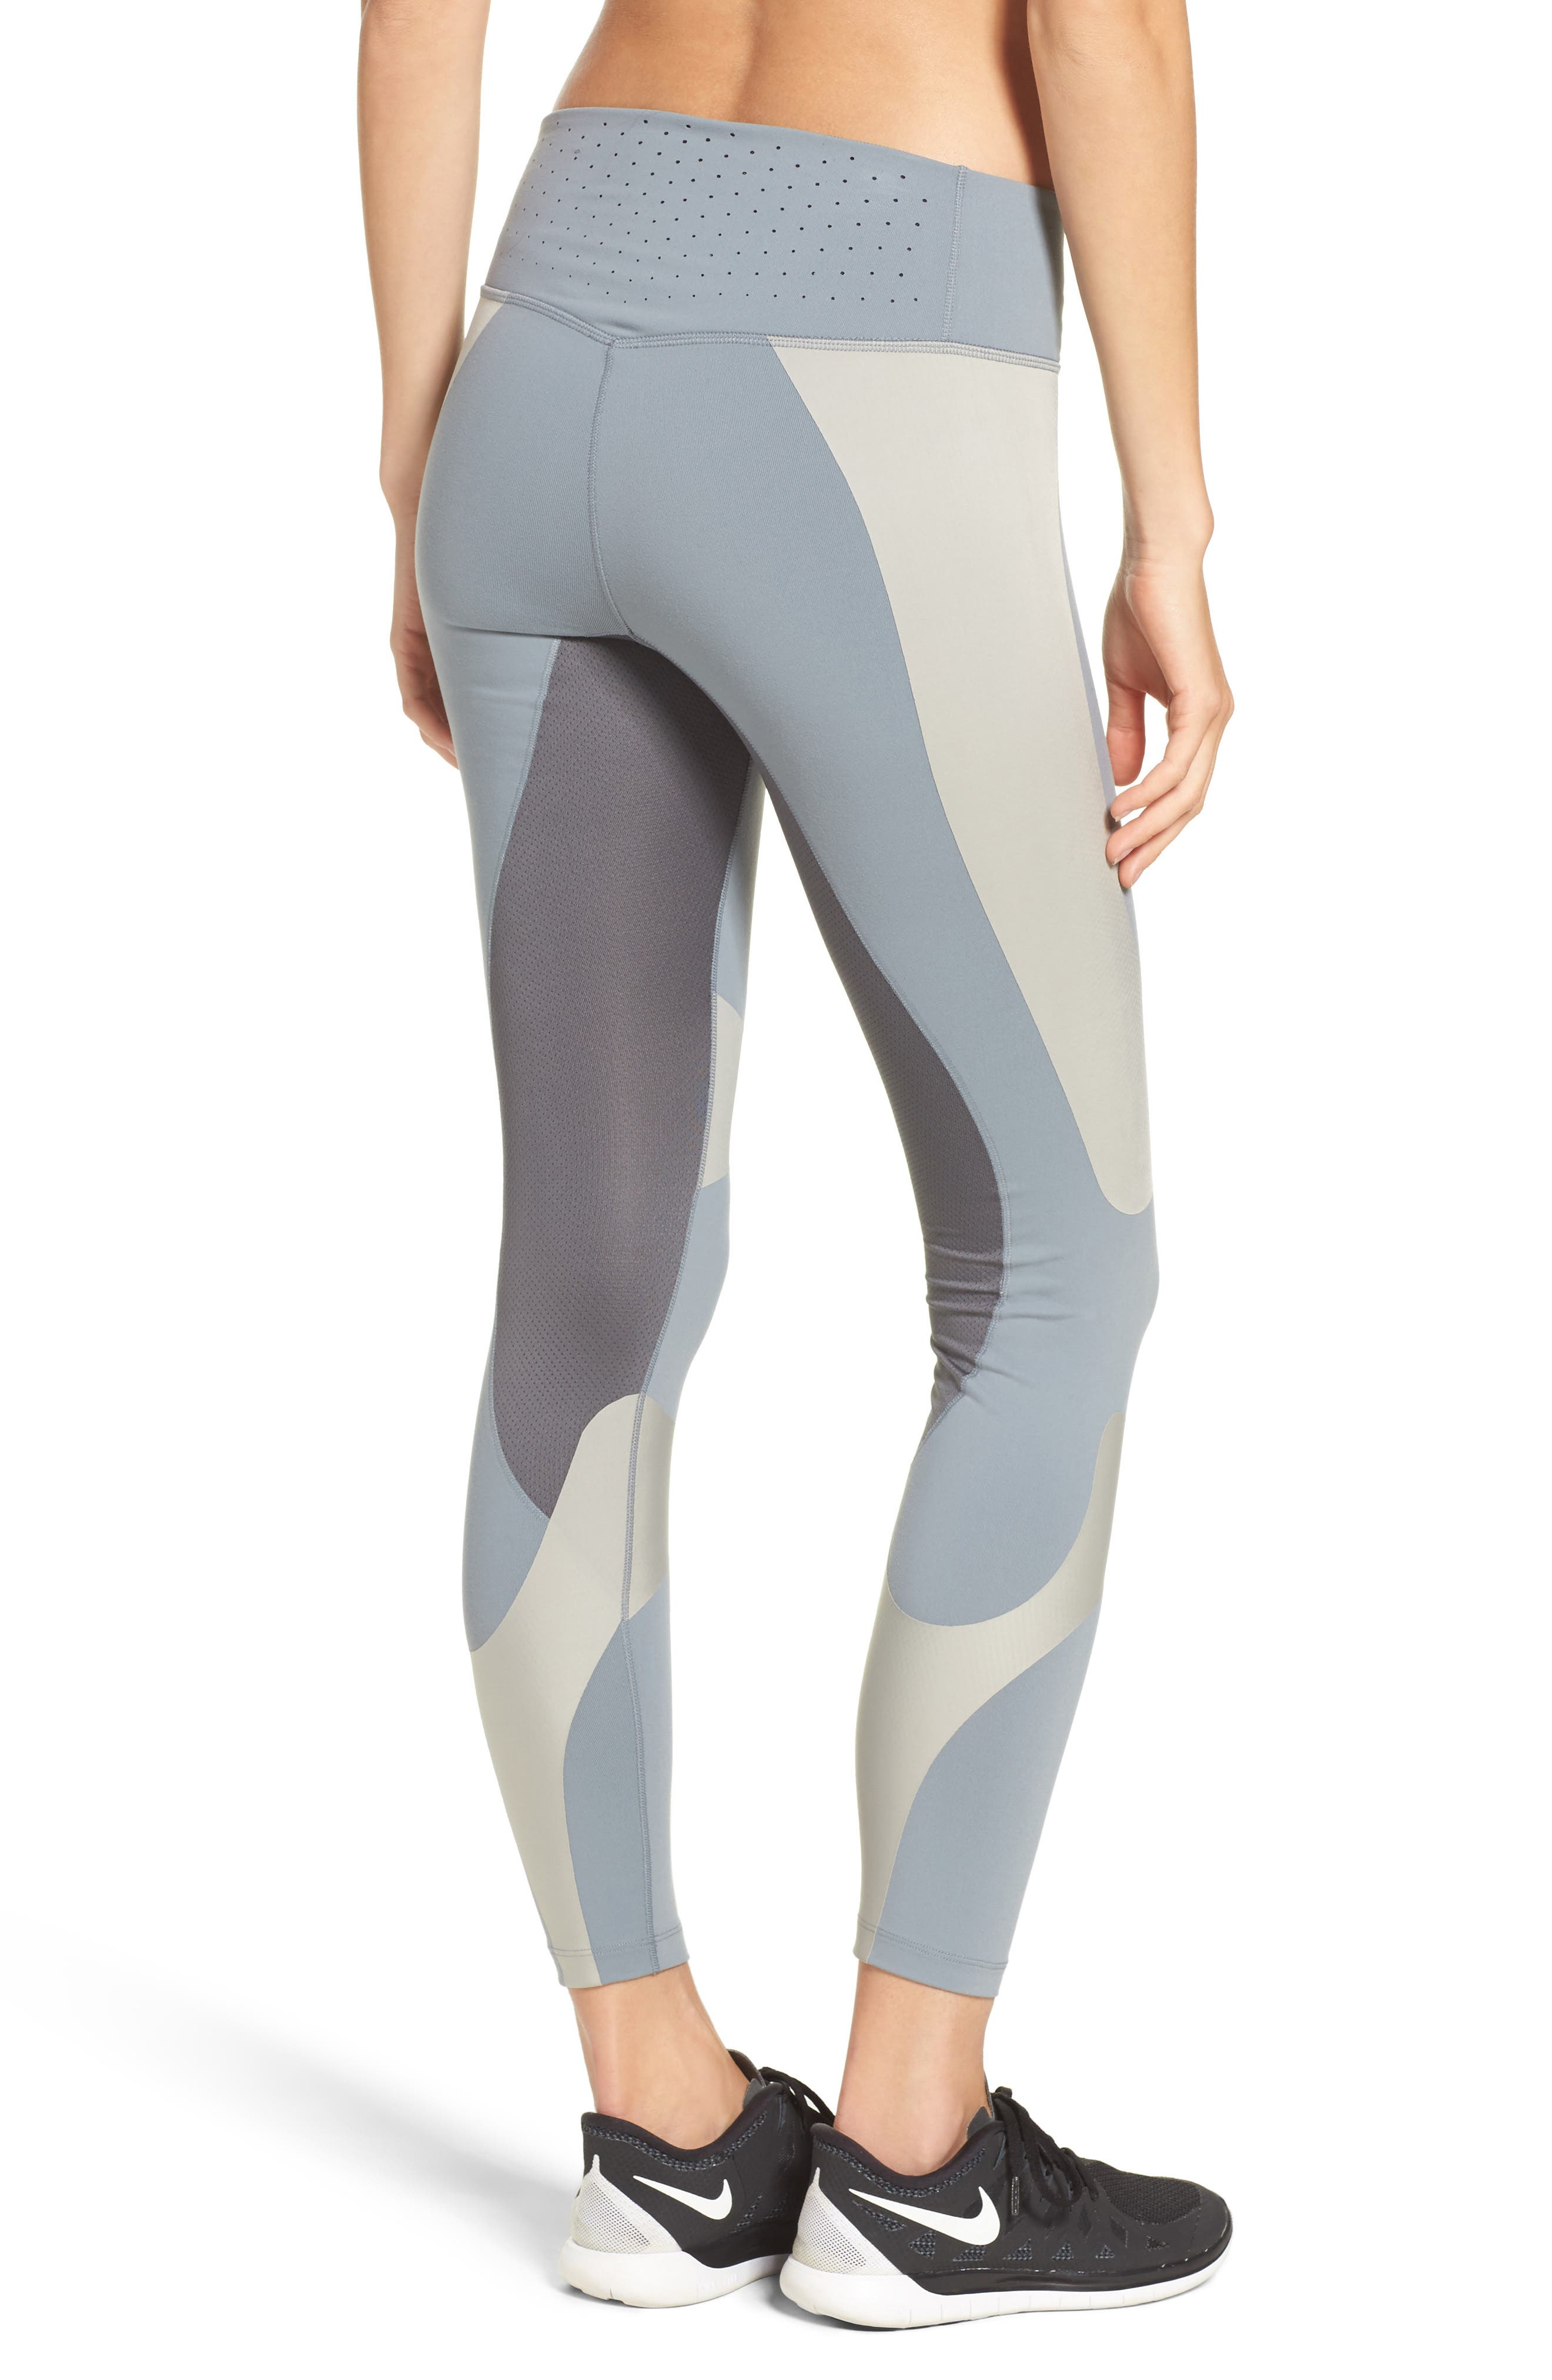 Power Legend Training Tights,                             Alternate thumbnail 2, color,                             Grey/ Cobblestone/ Grey/ Black